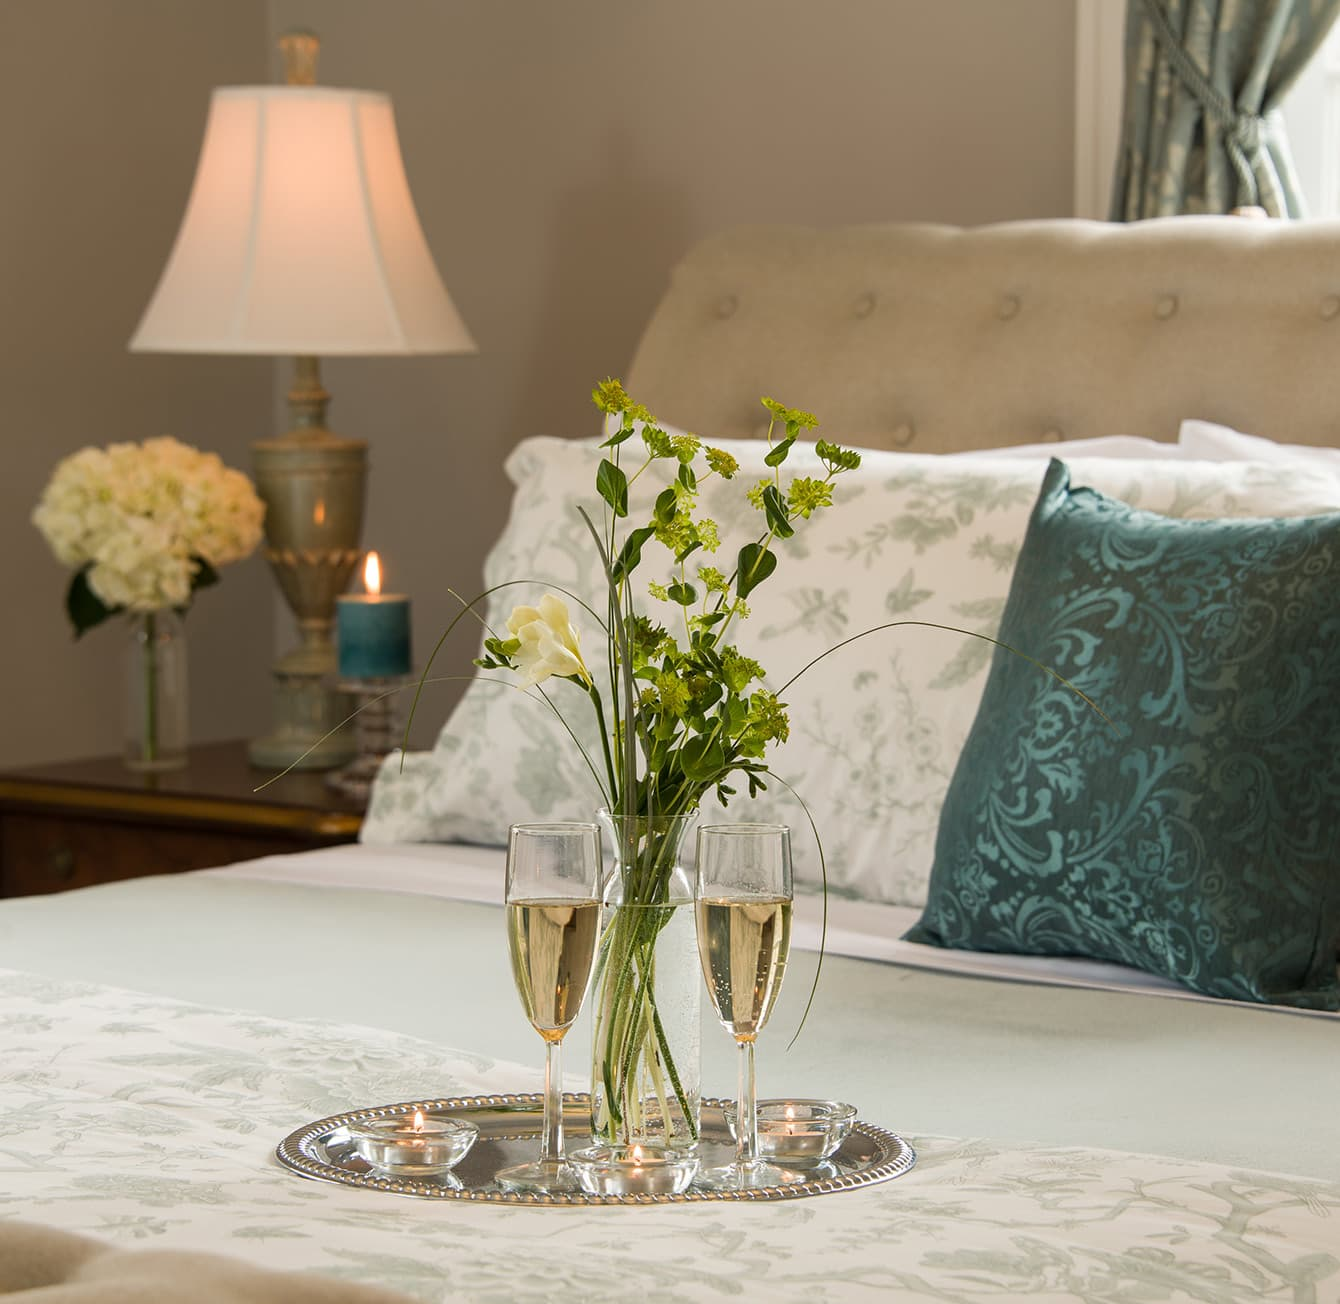 champagne and flowers on a bed at Landmark Inn Cooperstown